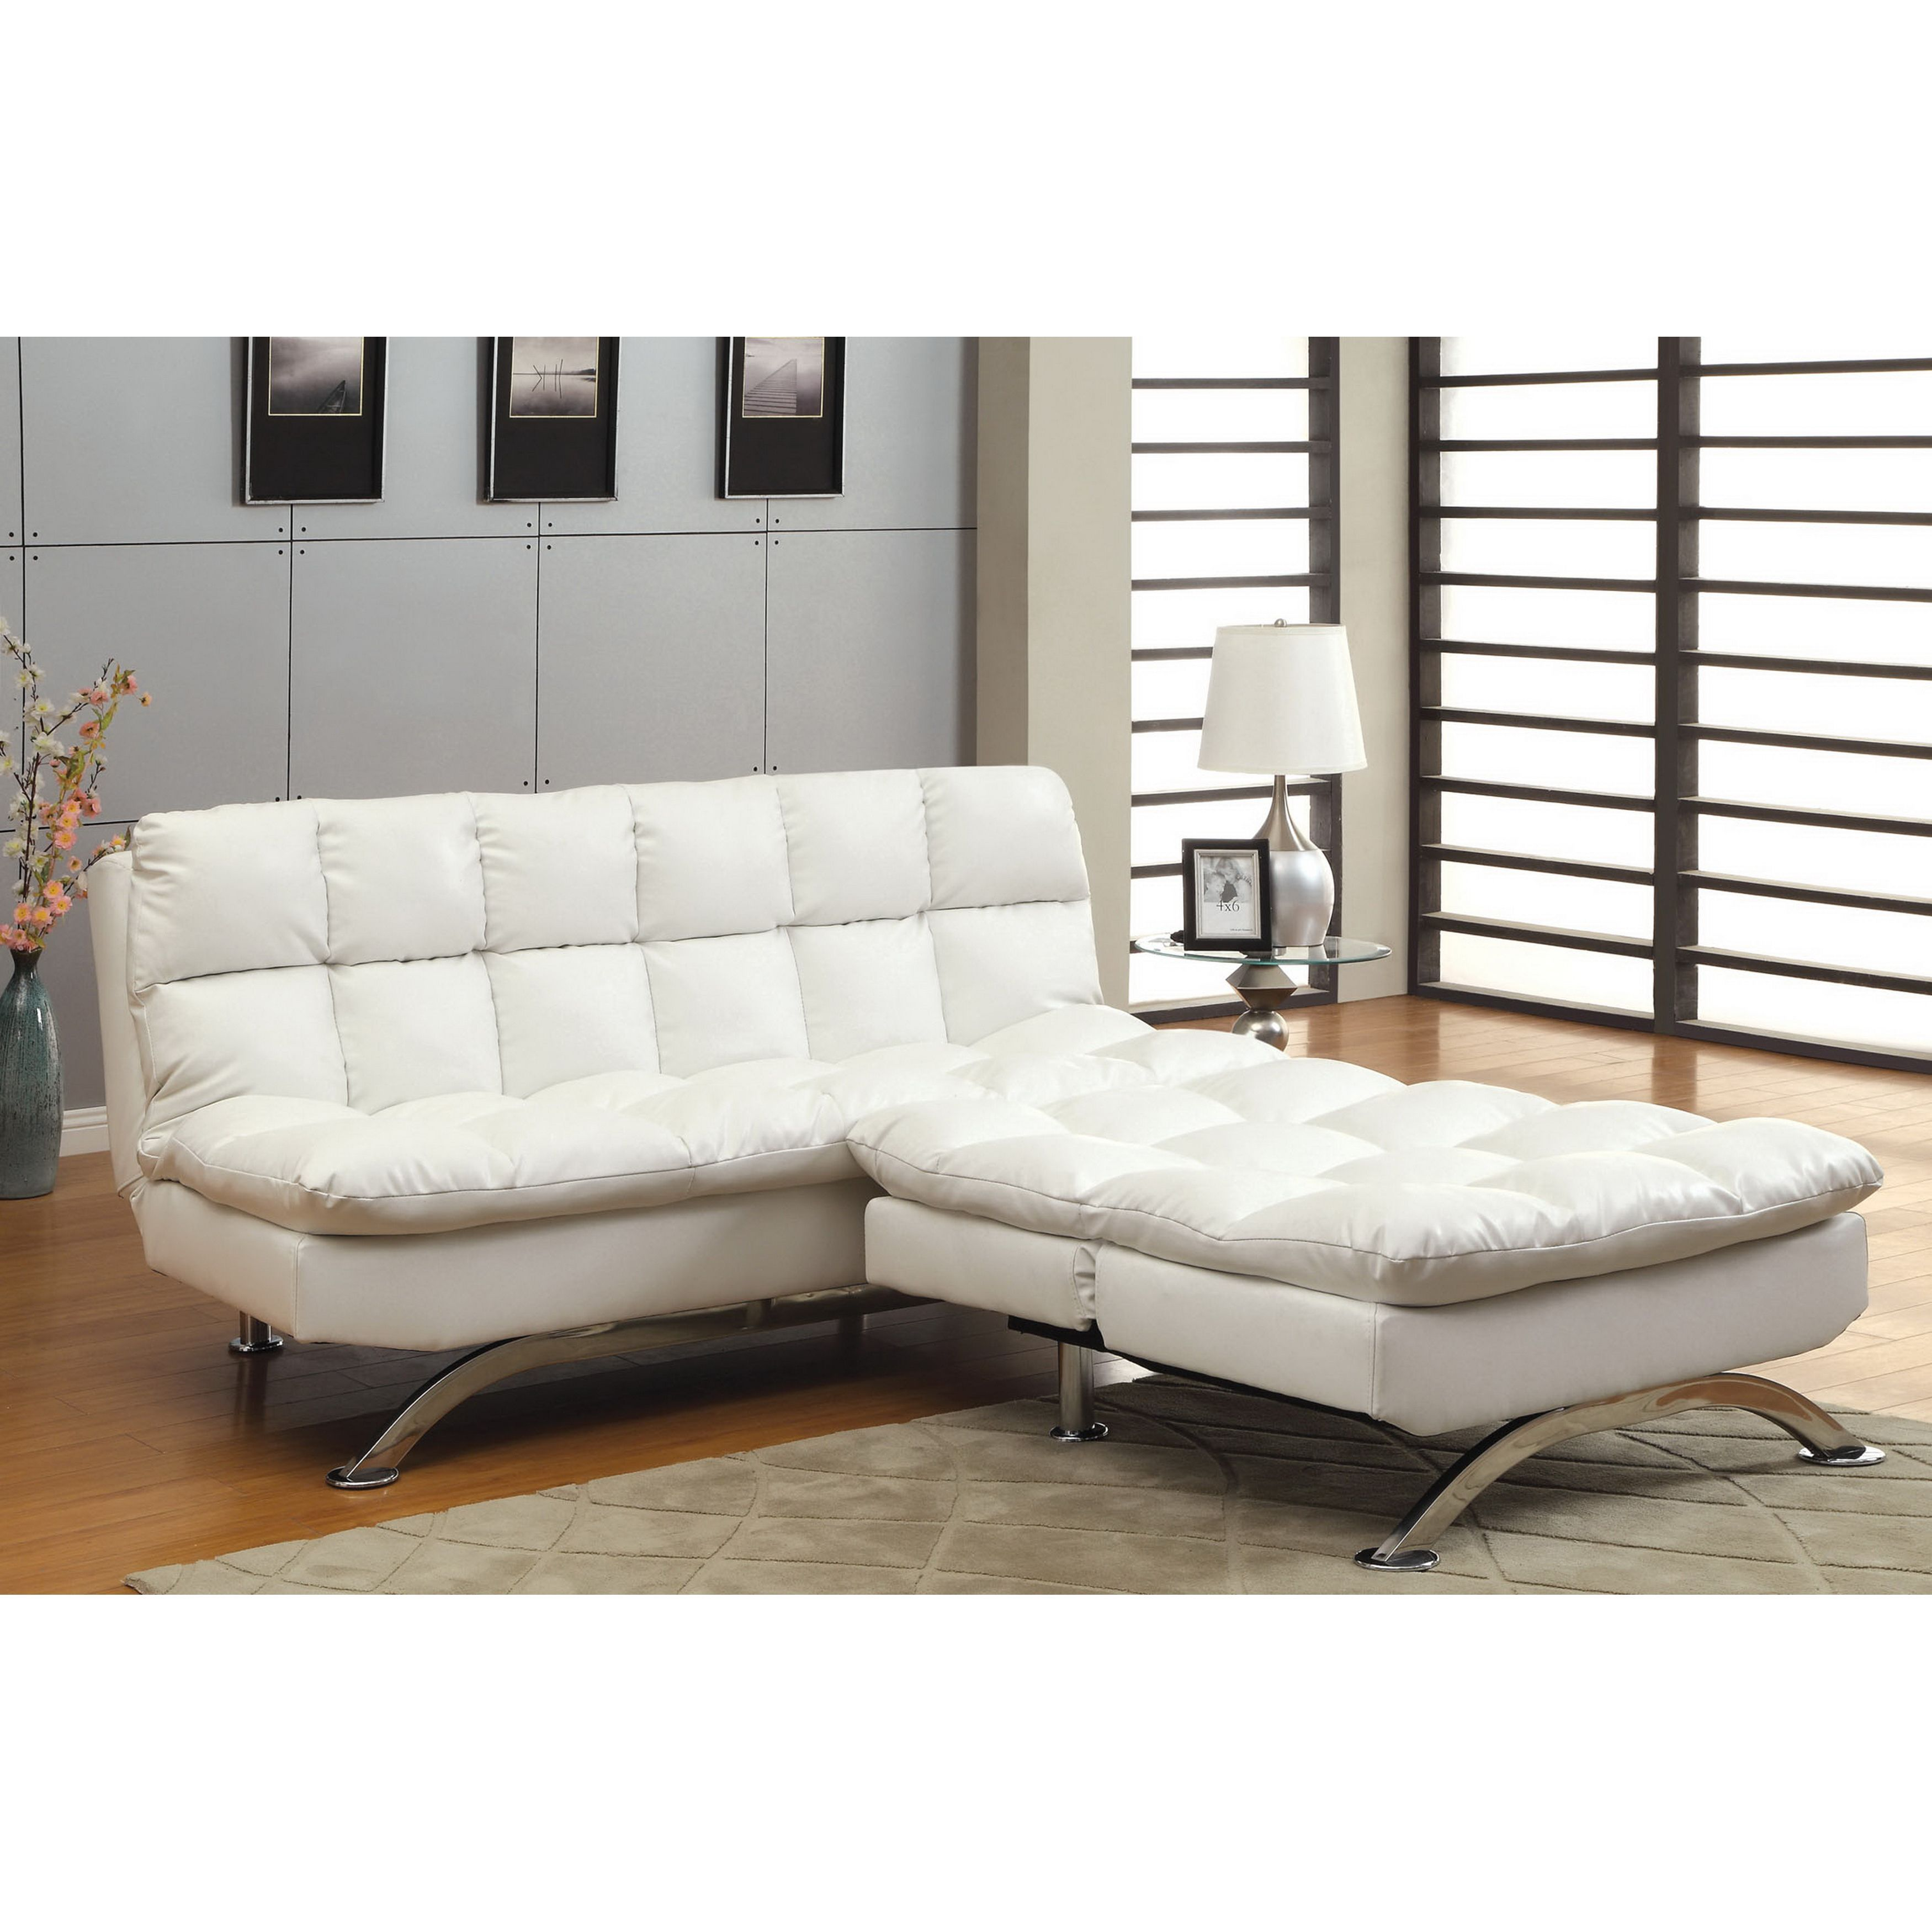 collection design madison of inspirational premium ideas canvas futon futons wi queen cover cotton